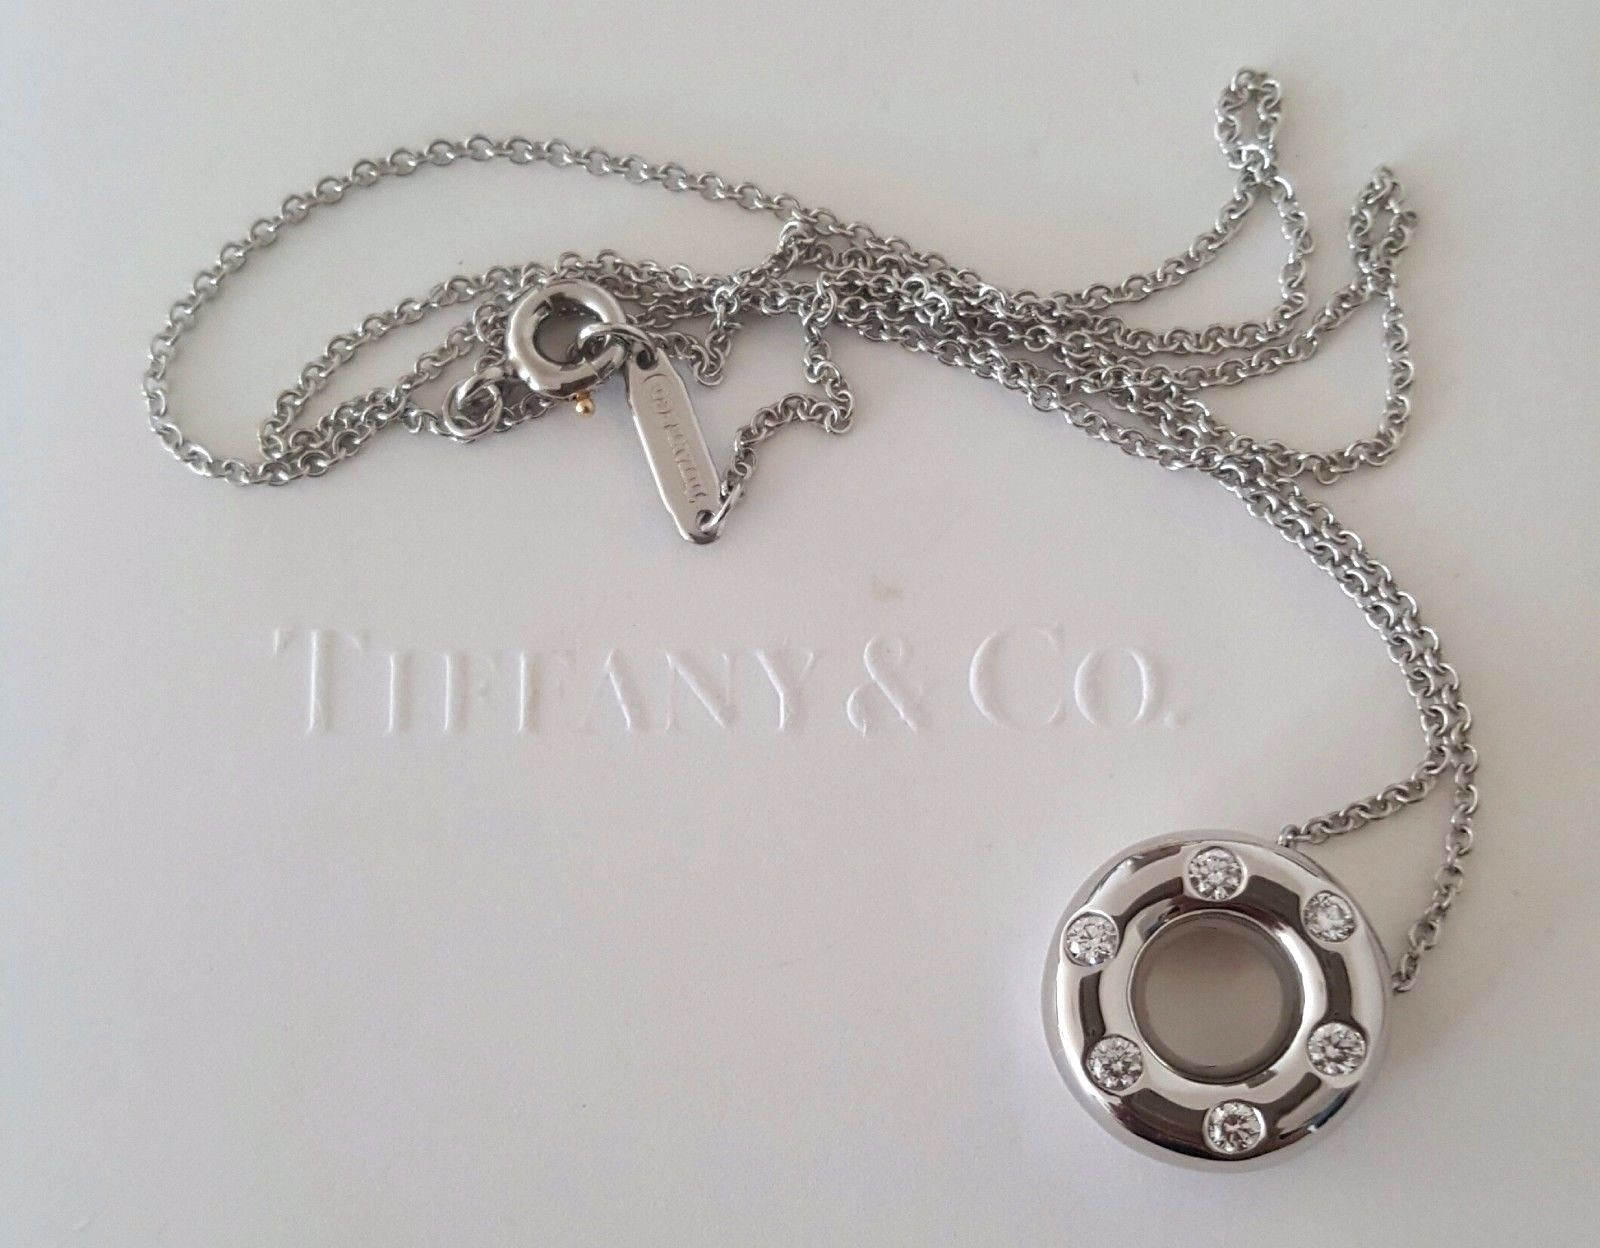 Vintage Tiffany & Co. Diamond Pendant